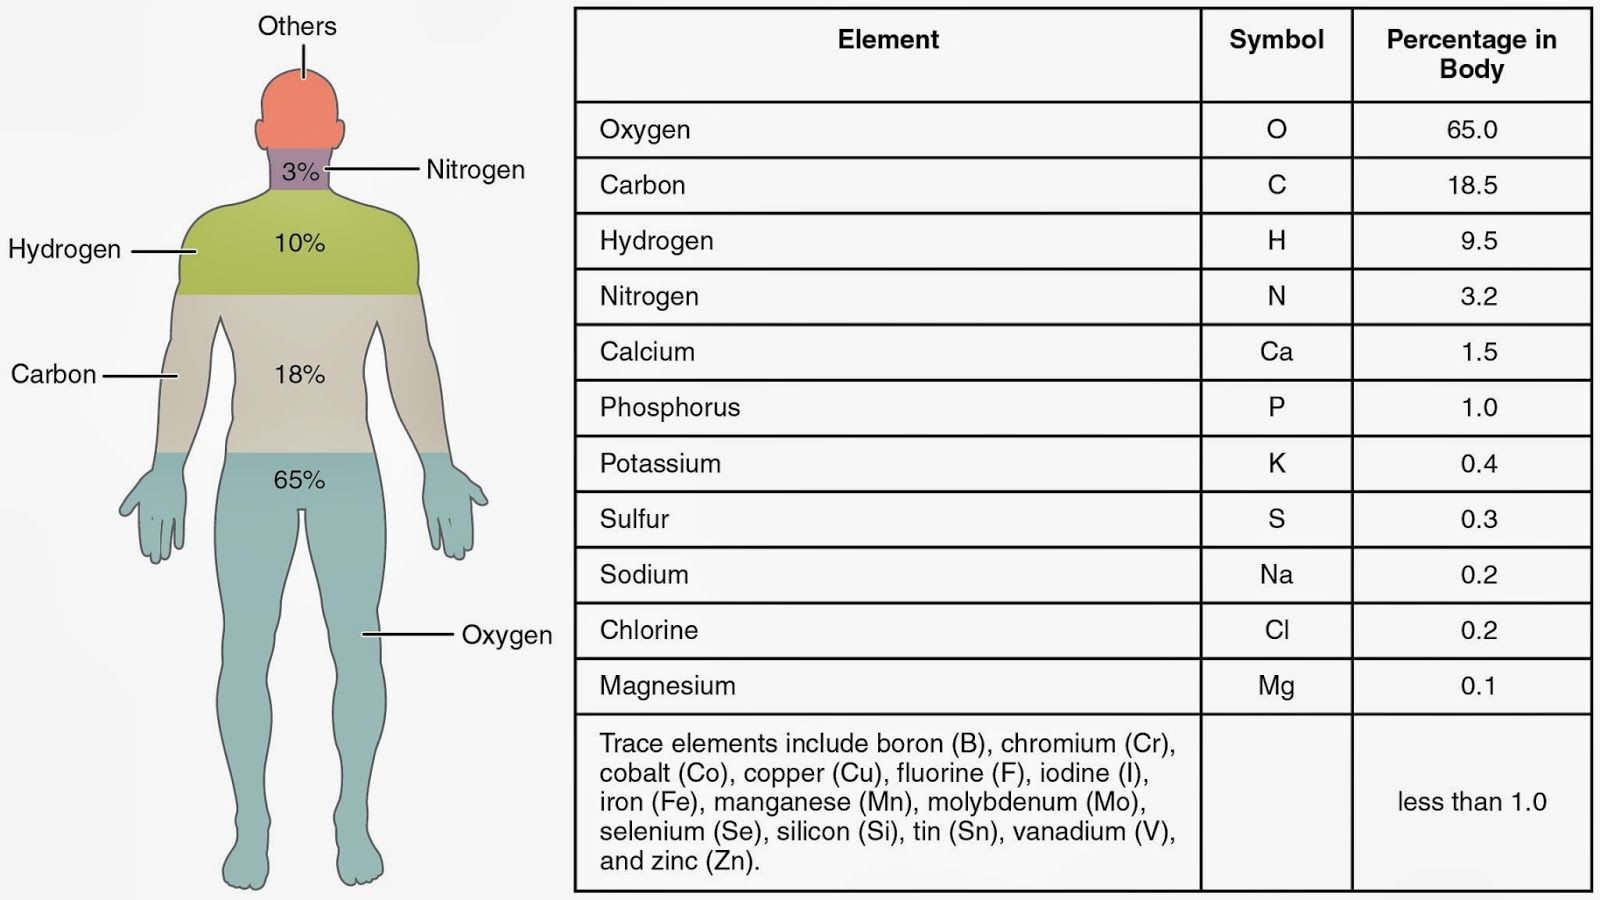 Worksheets Human Body Worksheets elements in the human body worksheet magical mysteries worksheet